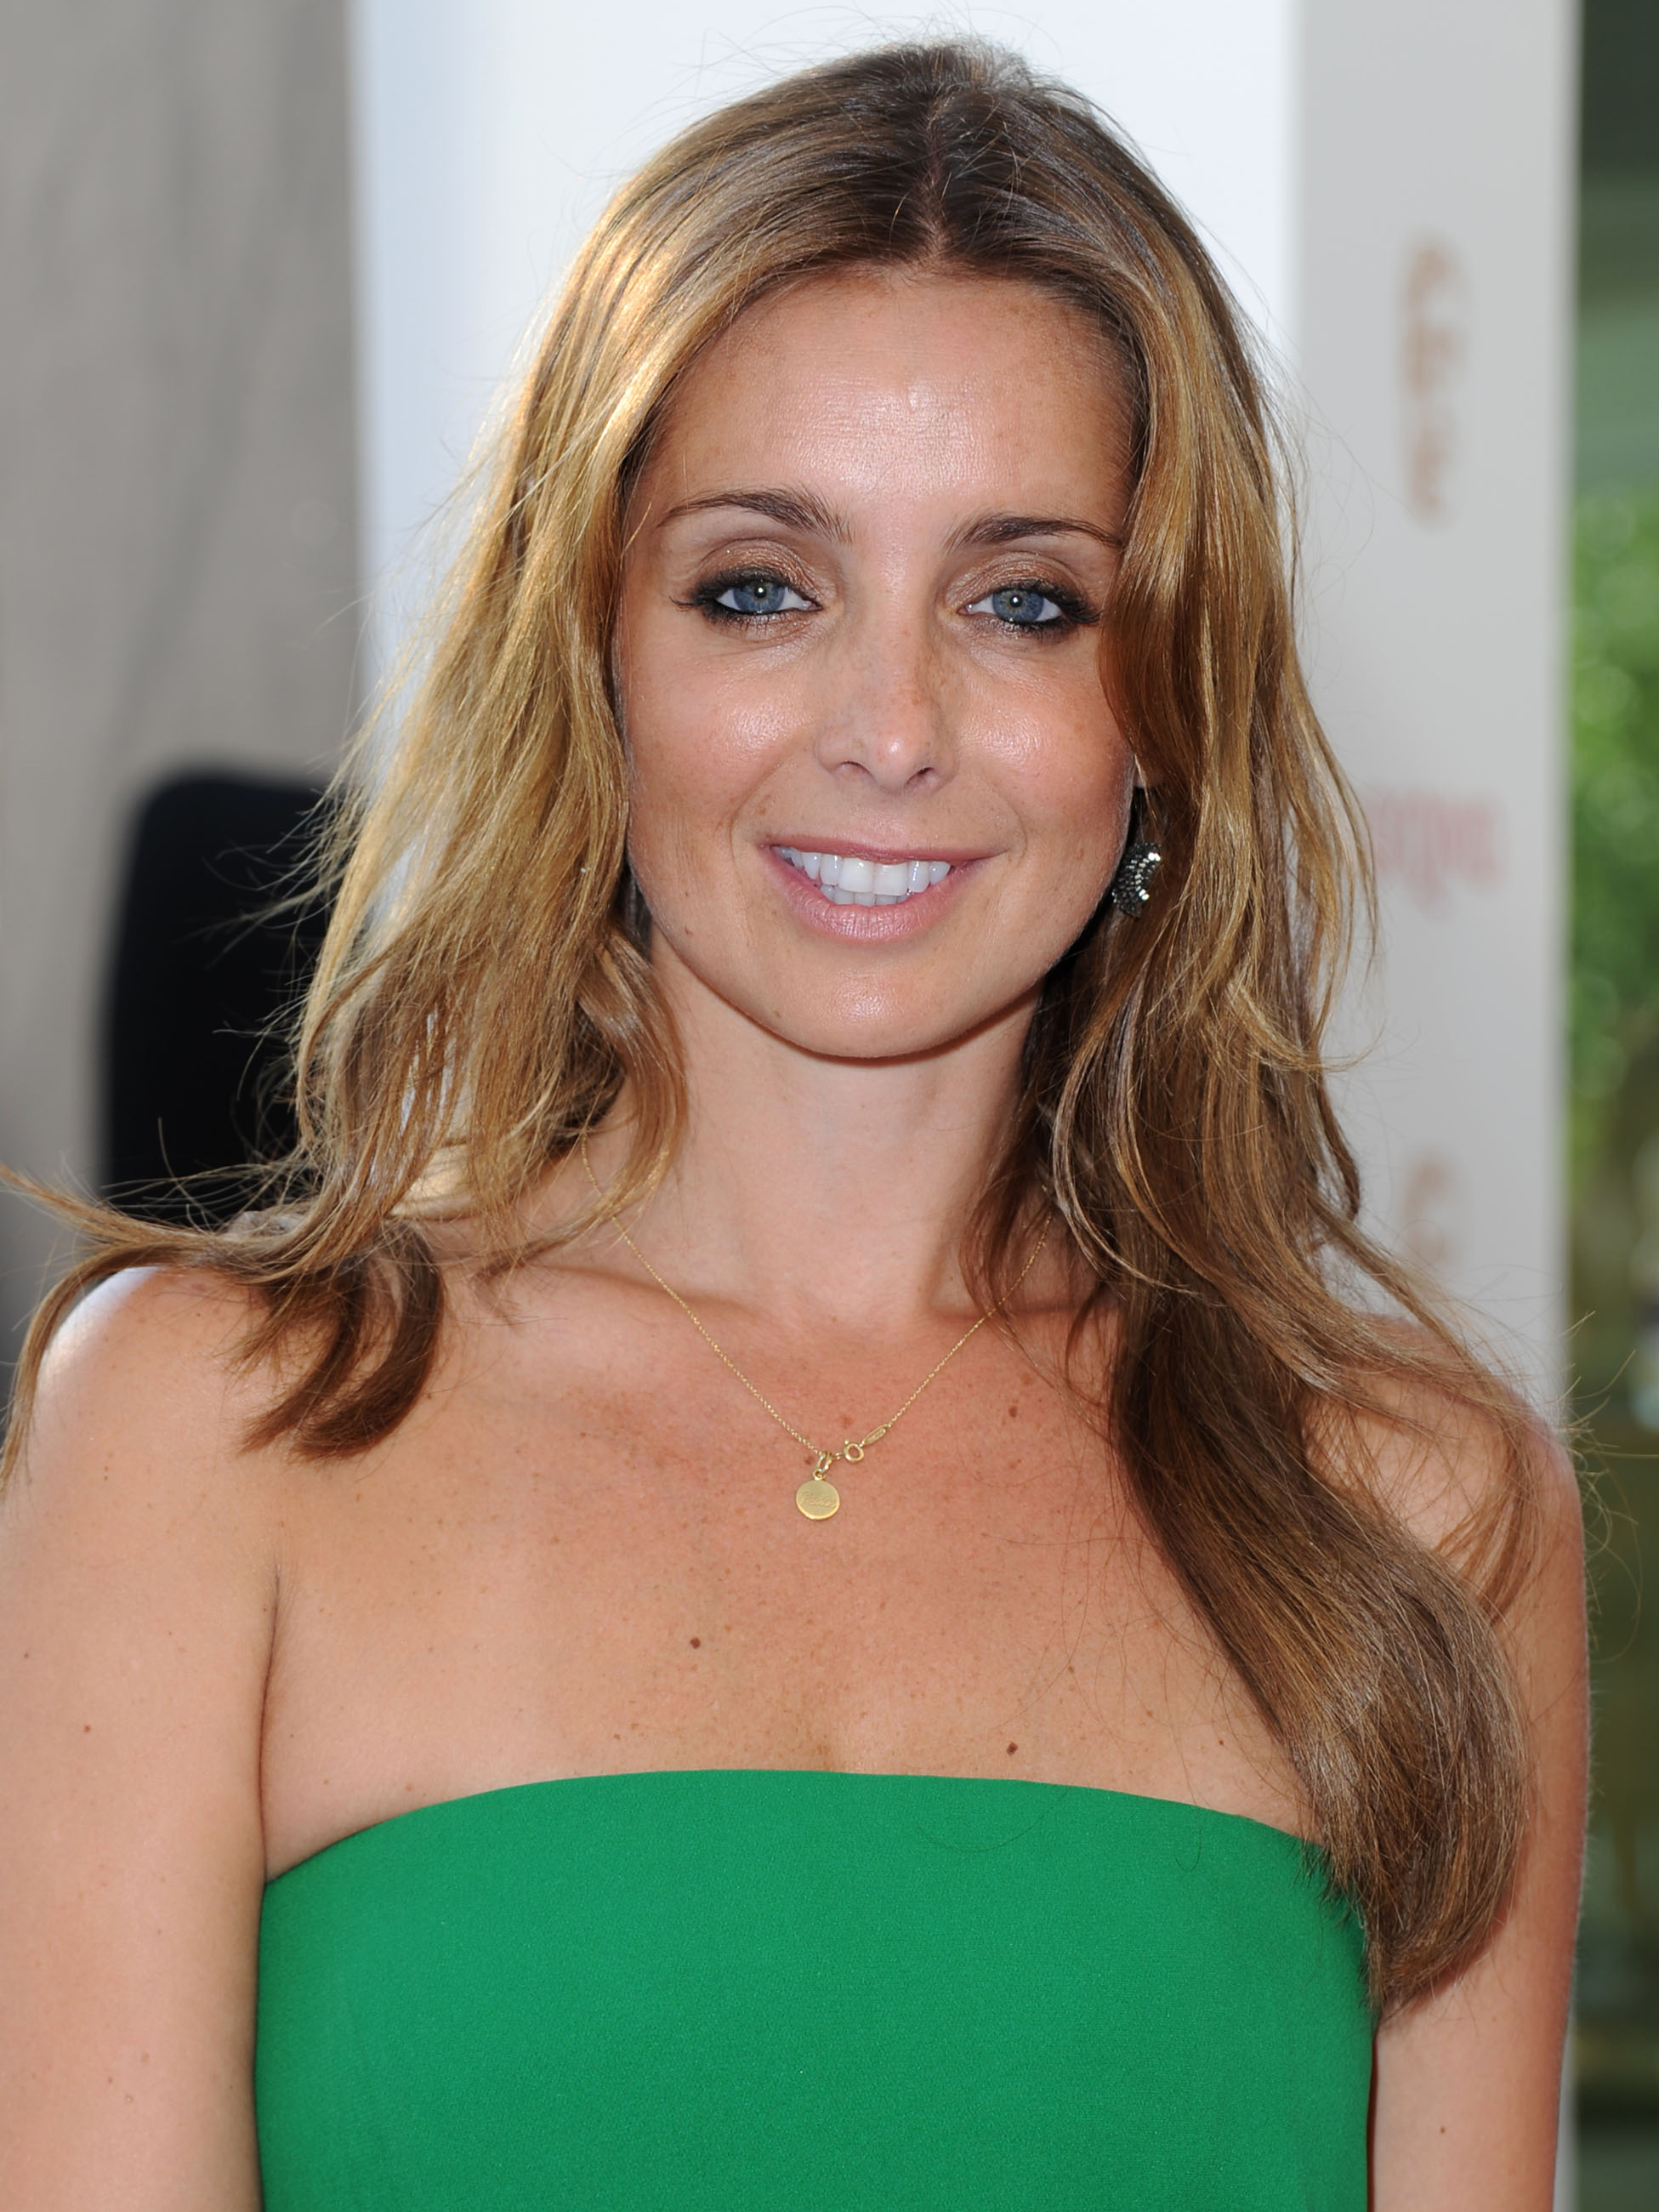 Louise Redknapp naked (36 photo), Topless, Is a cute, Boobs, bra 2015